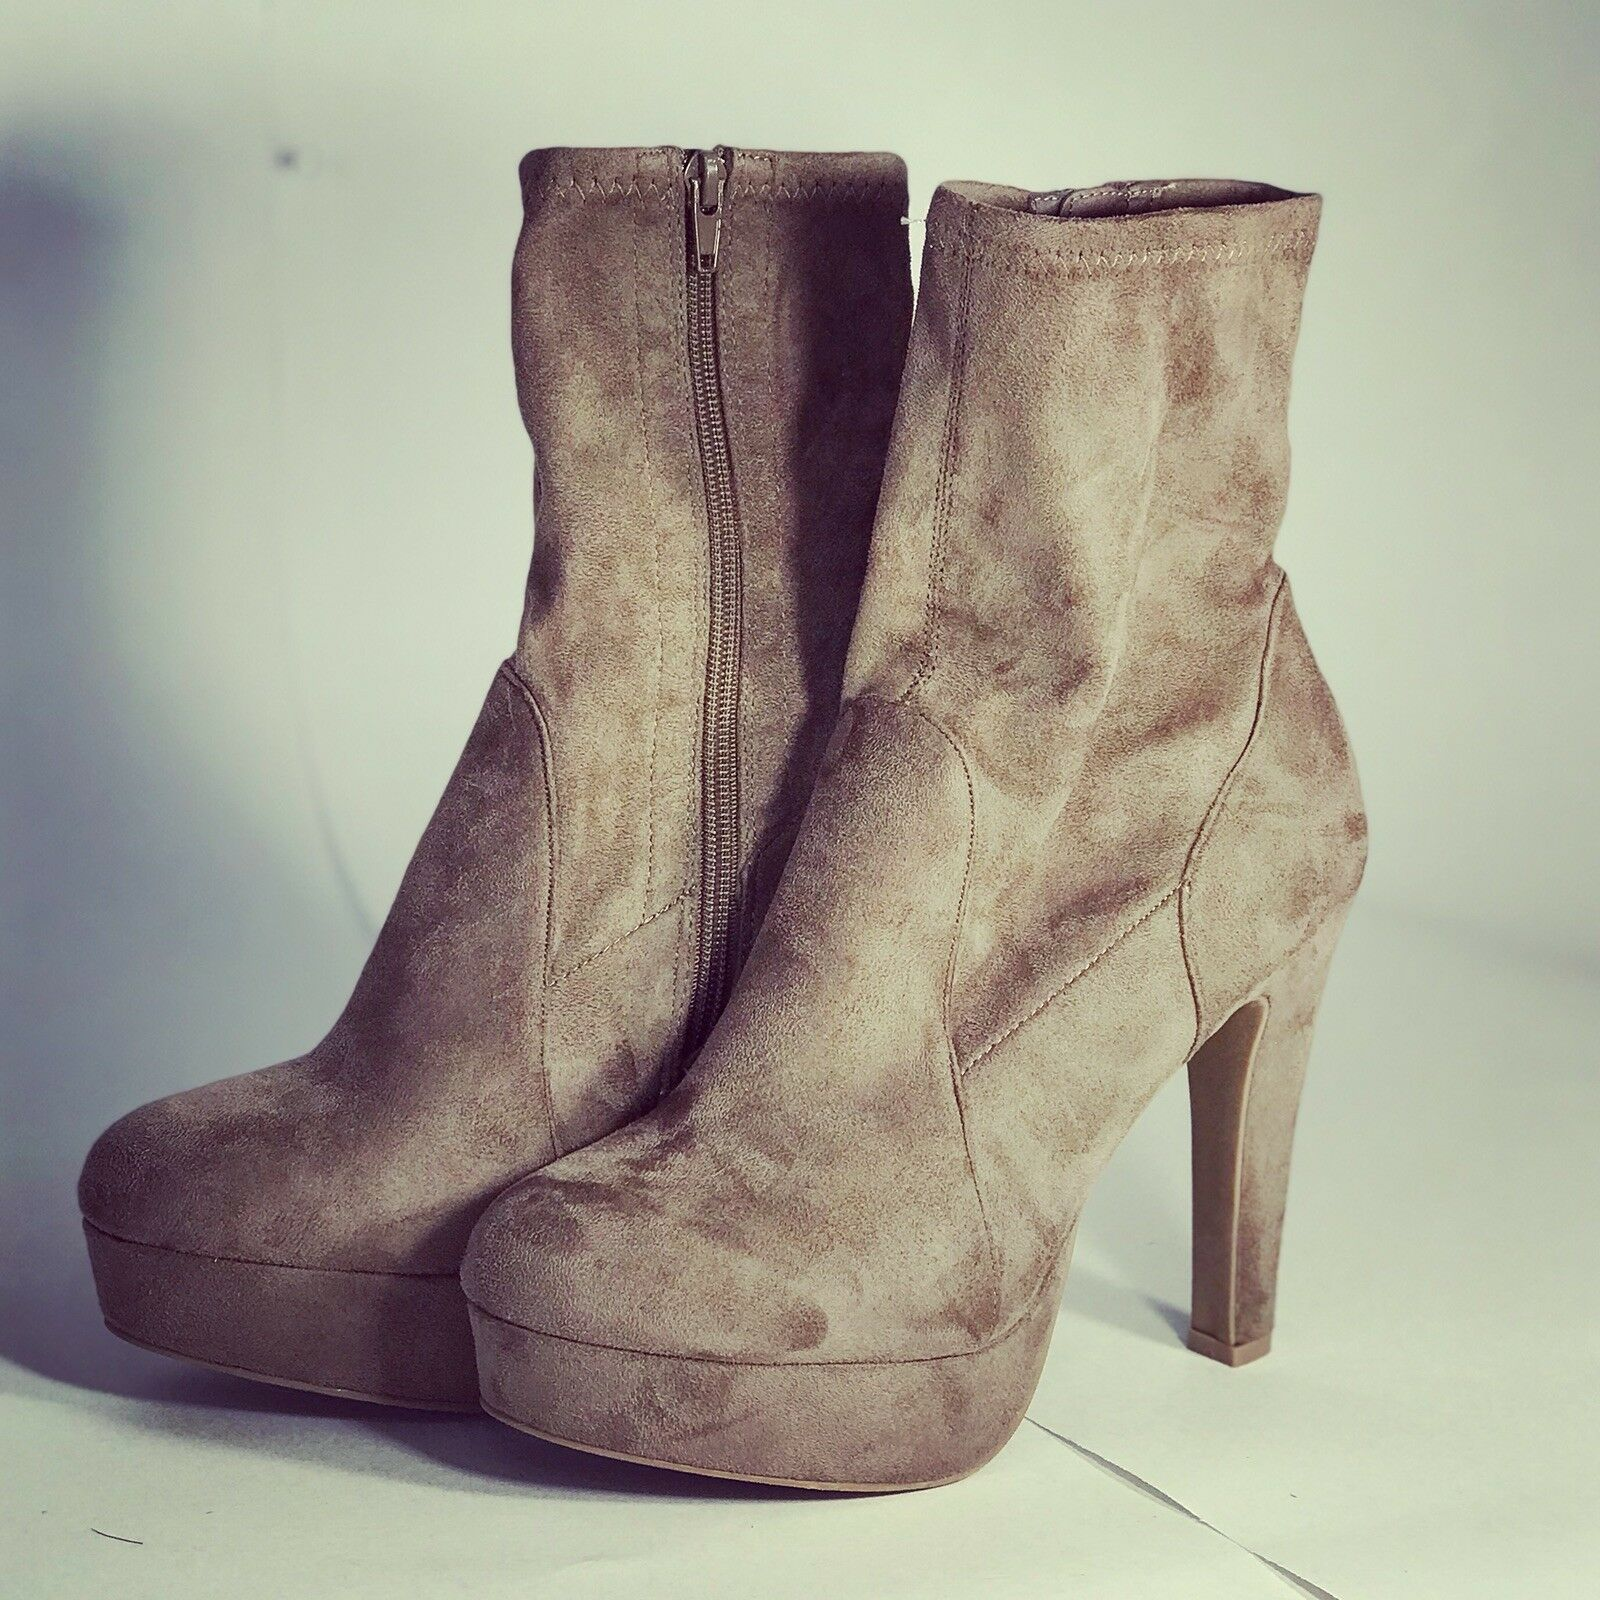 6a6b60dc881 CHARLOTTE RUSSE Brown Brown Brown Suede Booties Size 9 3b211c ...